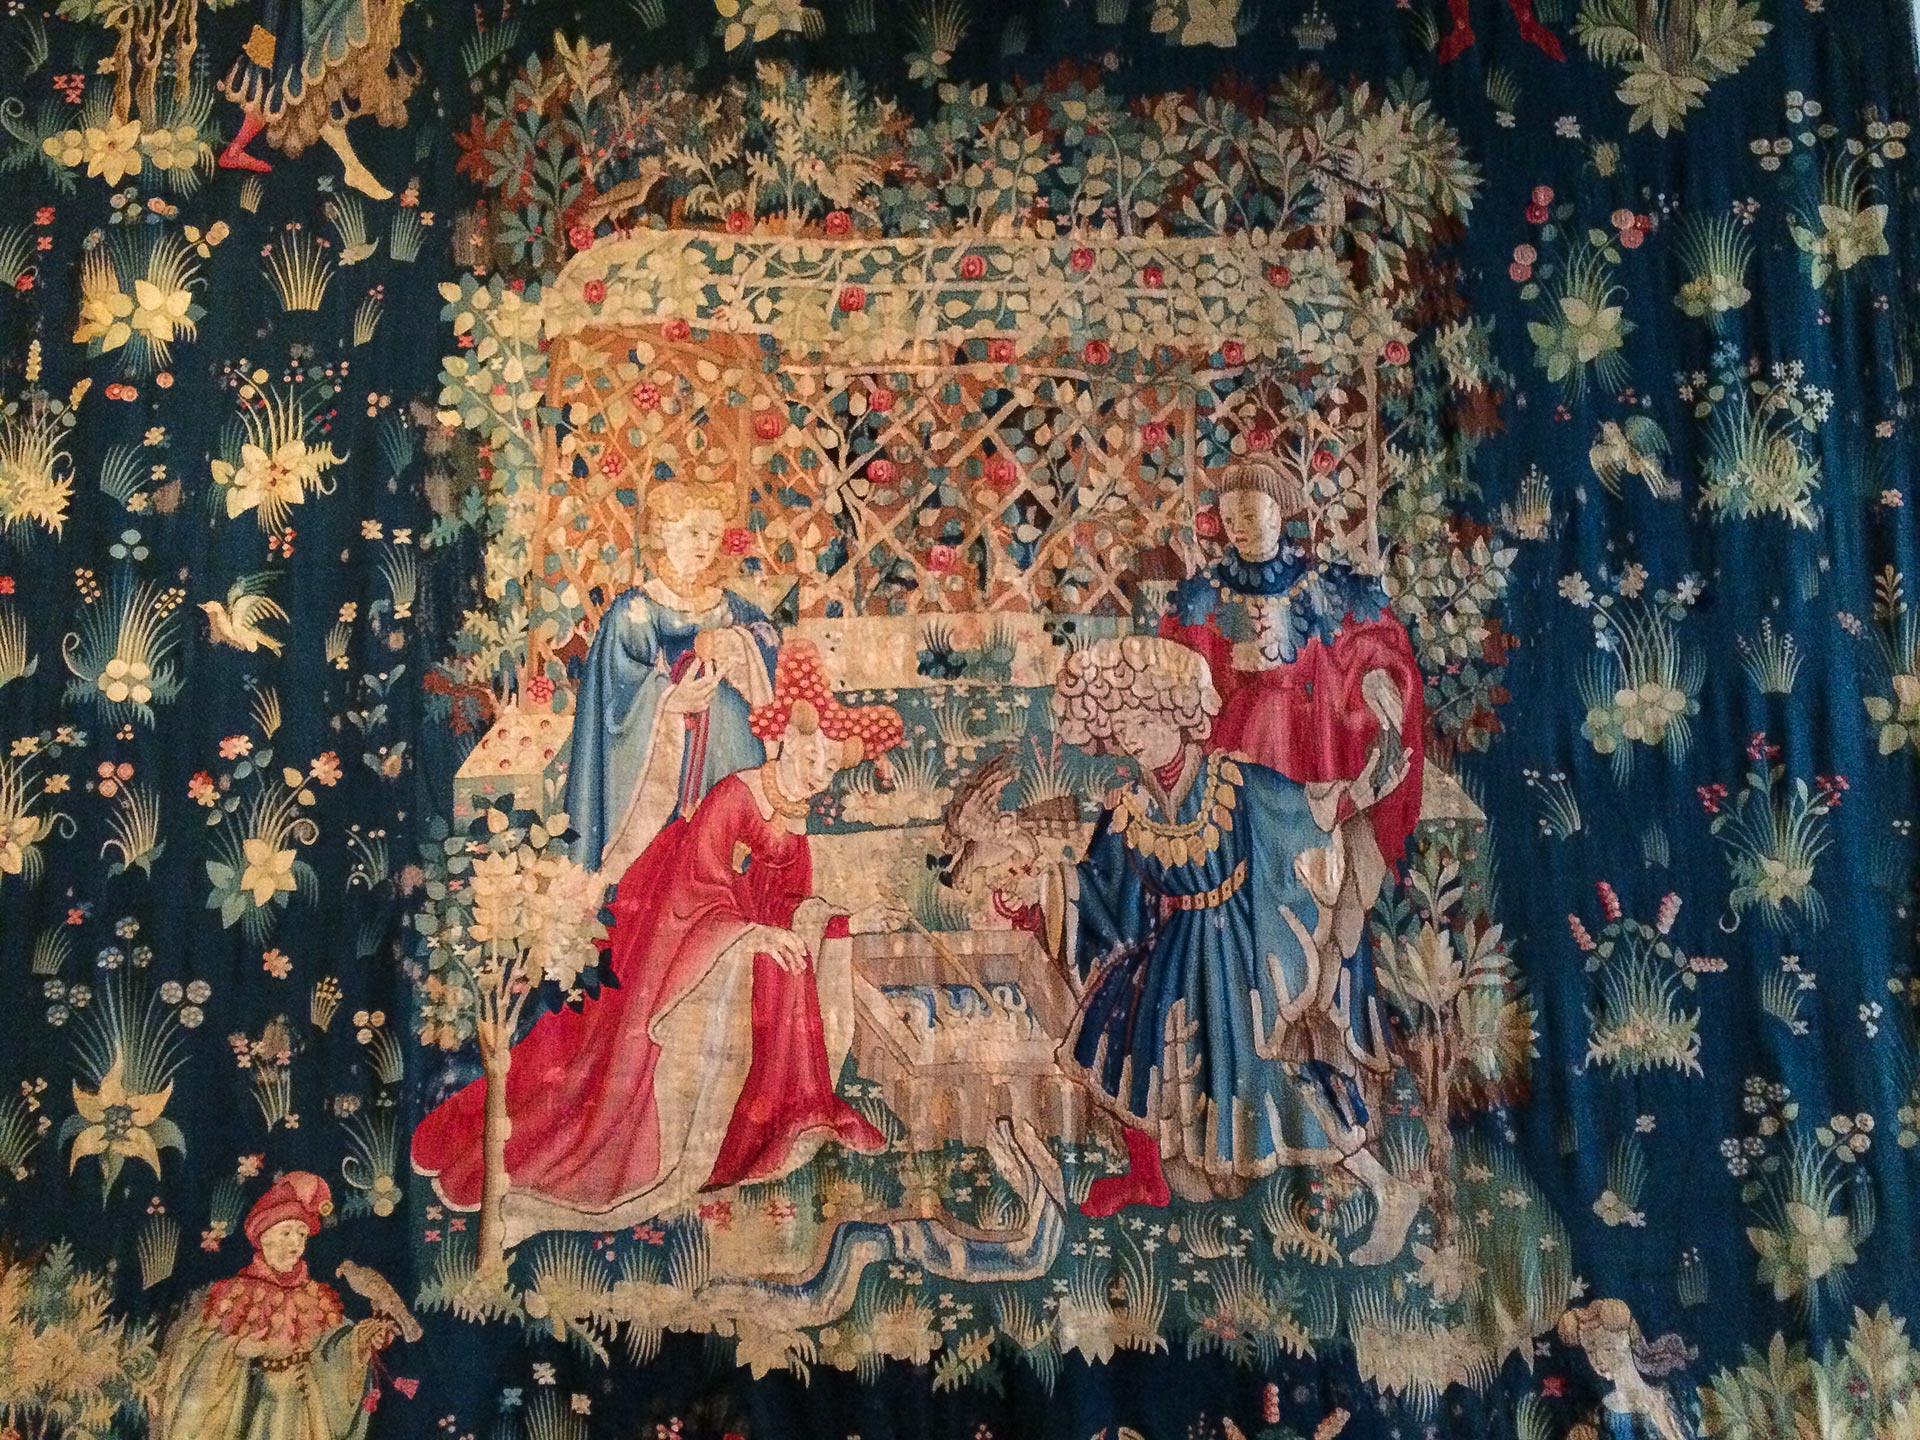 Tapestry - The Falcon's Bath, 1400, The Cloisters